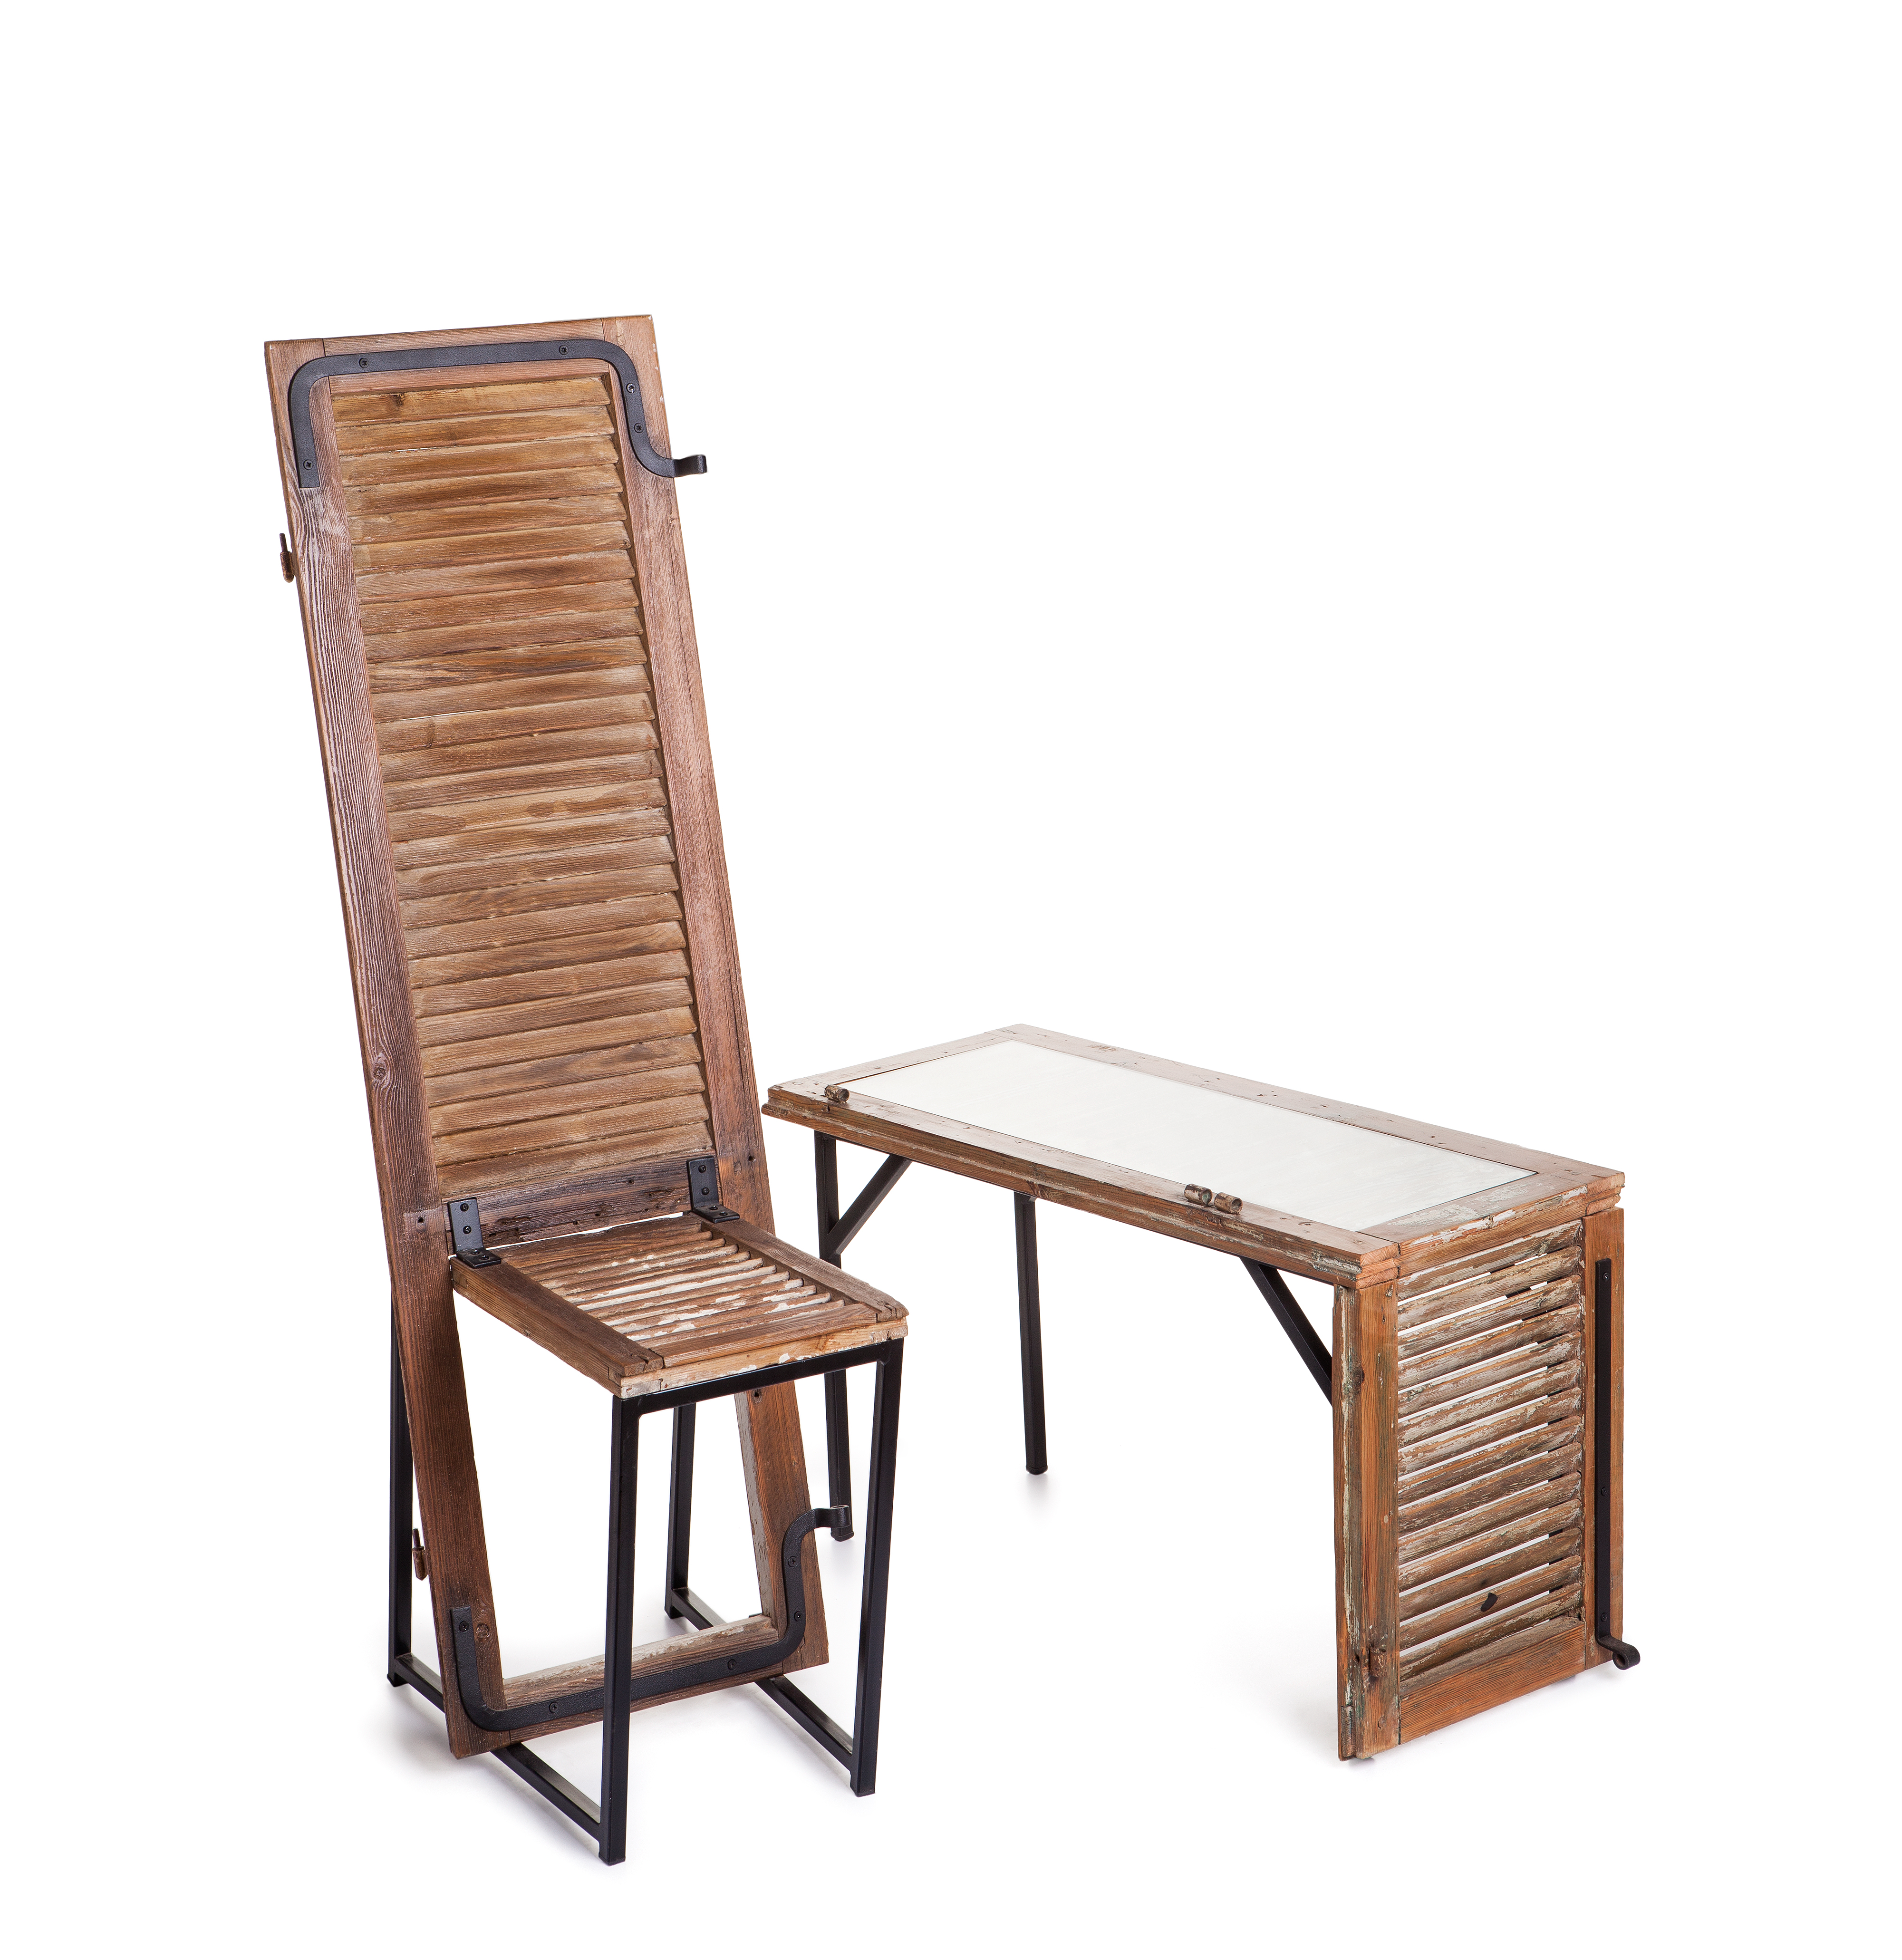 Wooden Shade Table & Chair